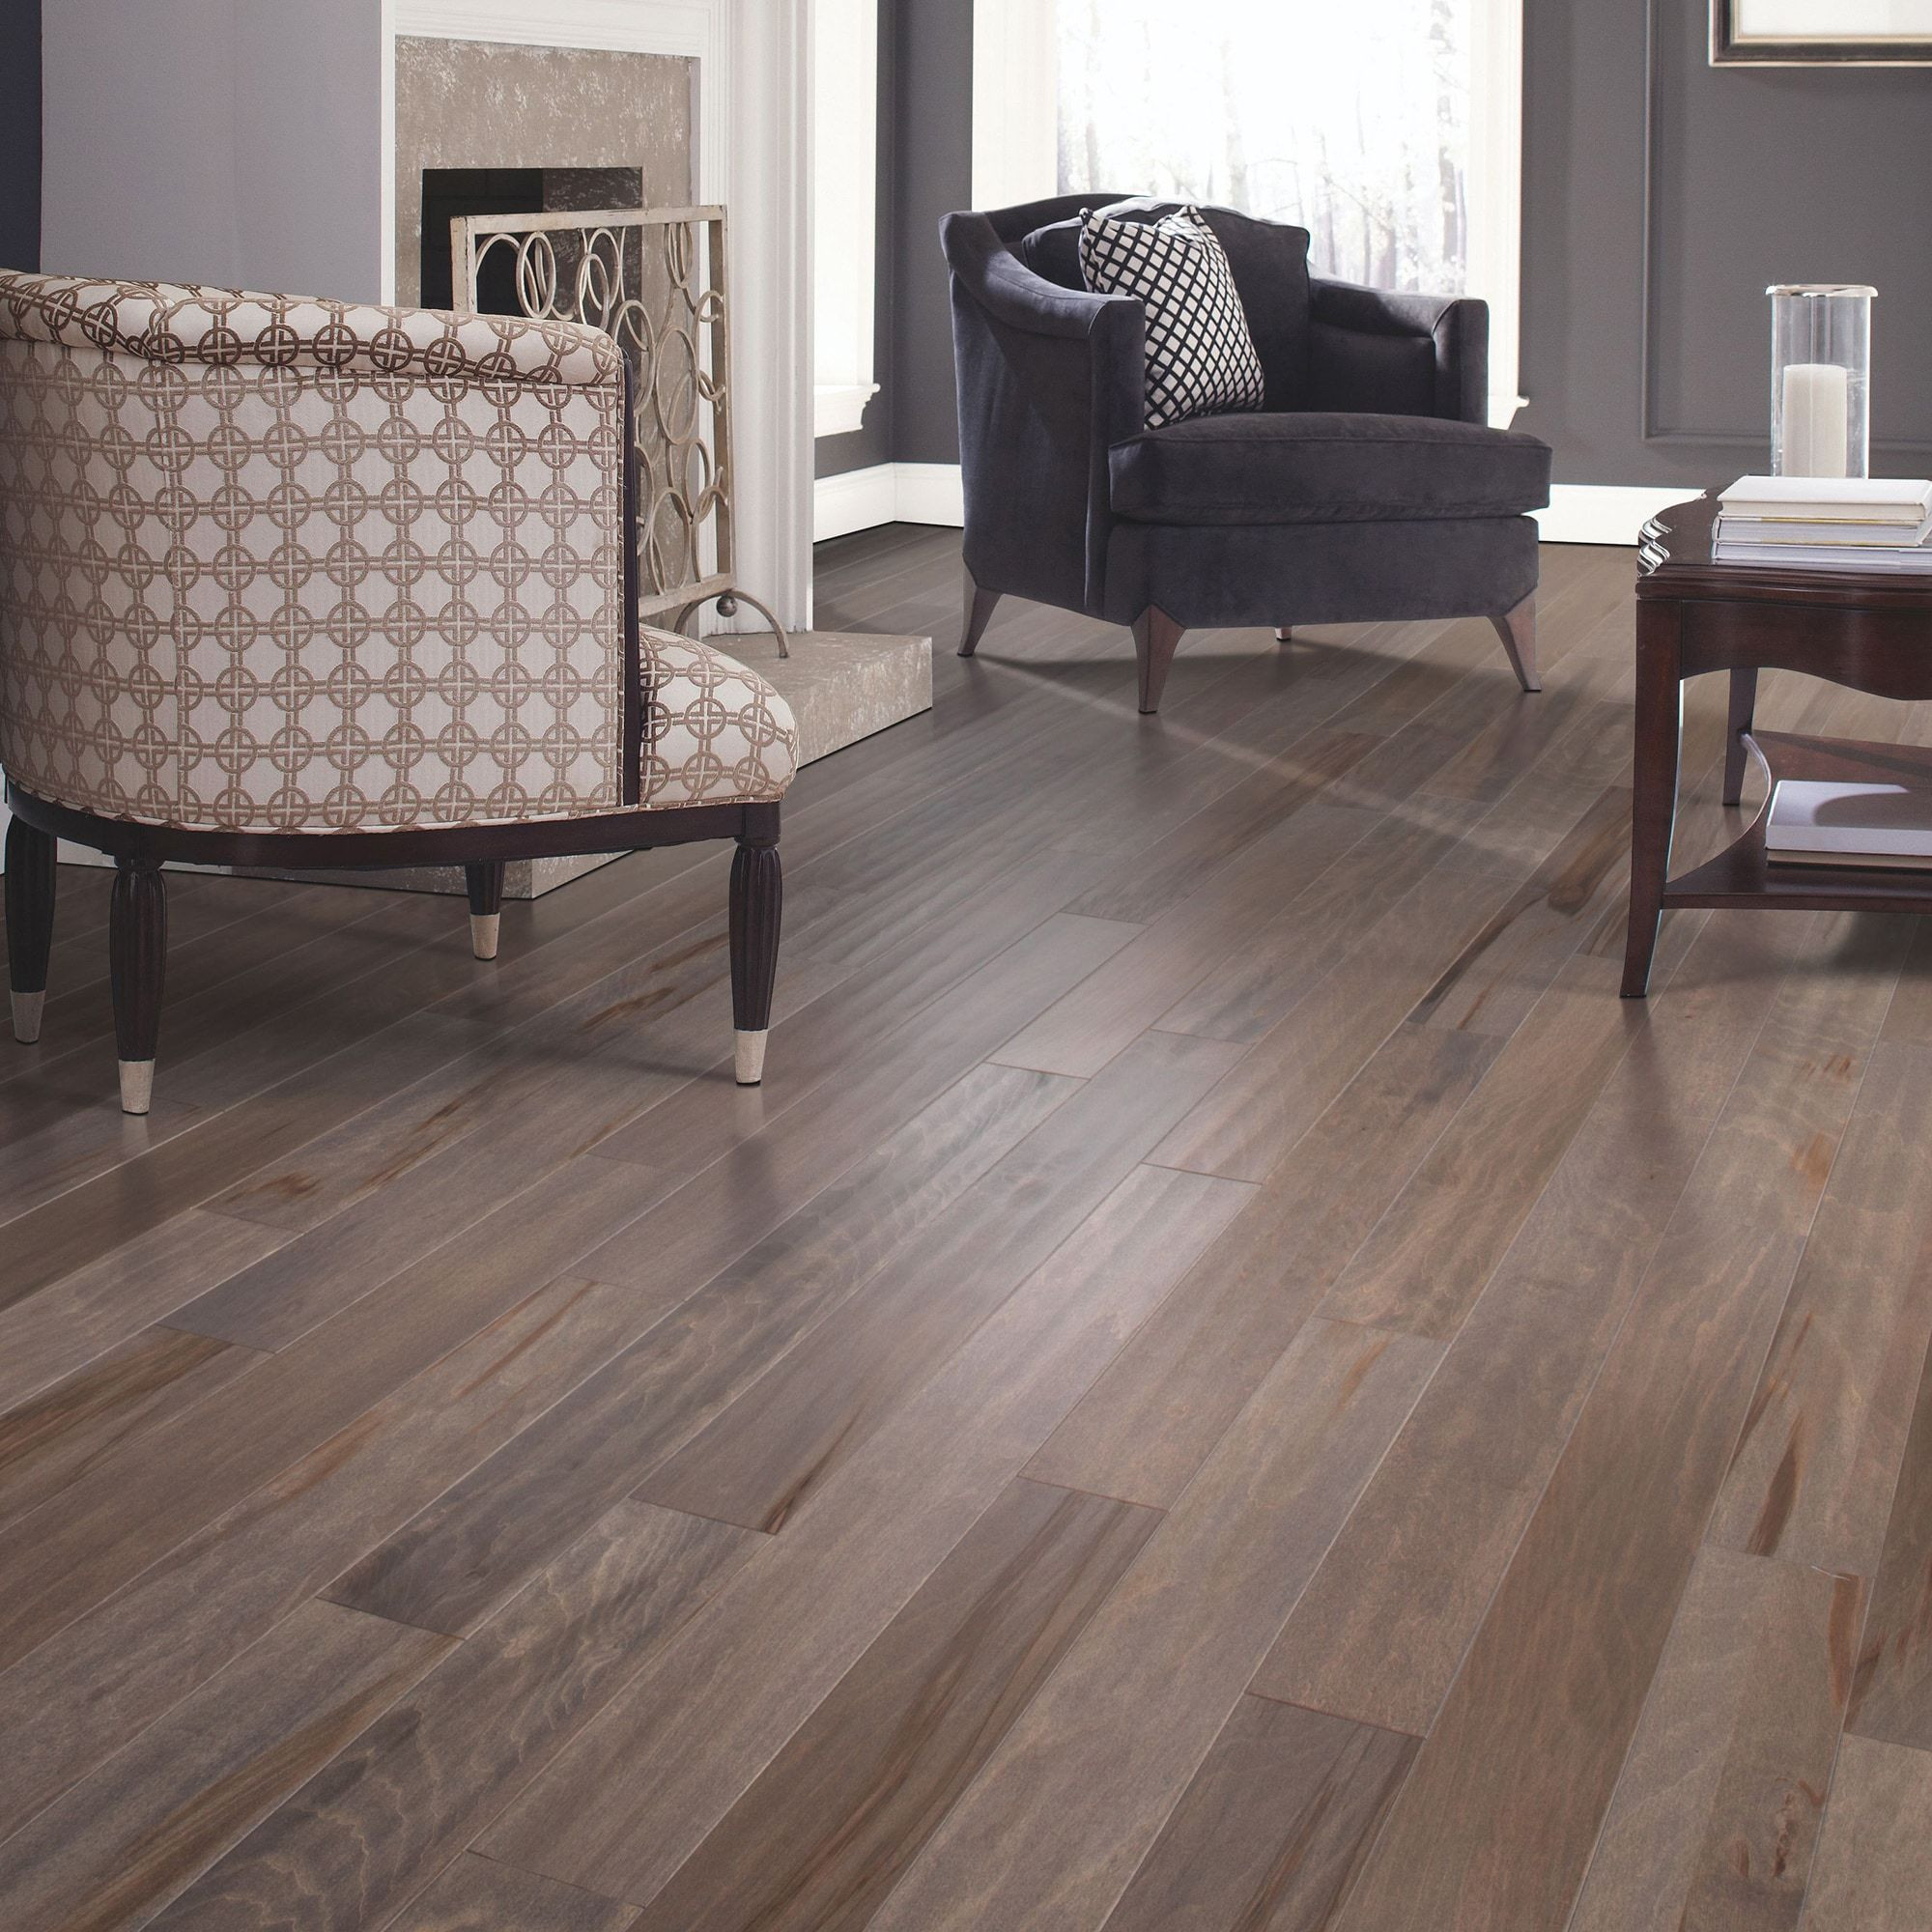 Hardwood Flooring Hamilton Ontario Of Builddirecta Mohawk Flooring Engineered Hardwood Ageless Allure Throughout Builddirecta Mohawk Flooring Engineered Hardwood Ageless Allure Collection